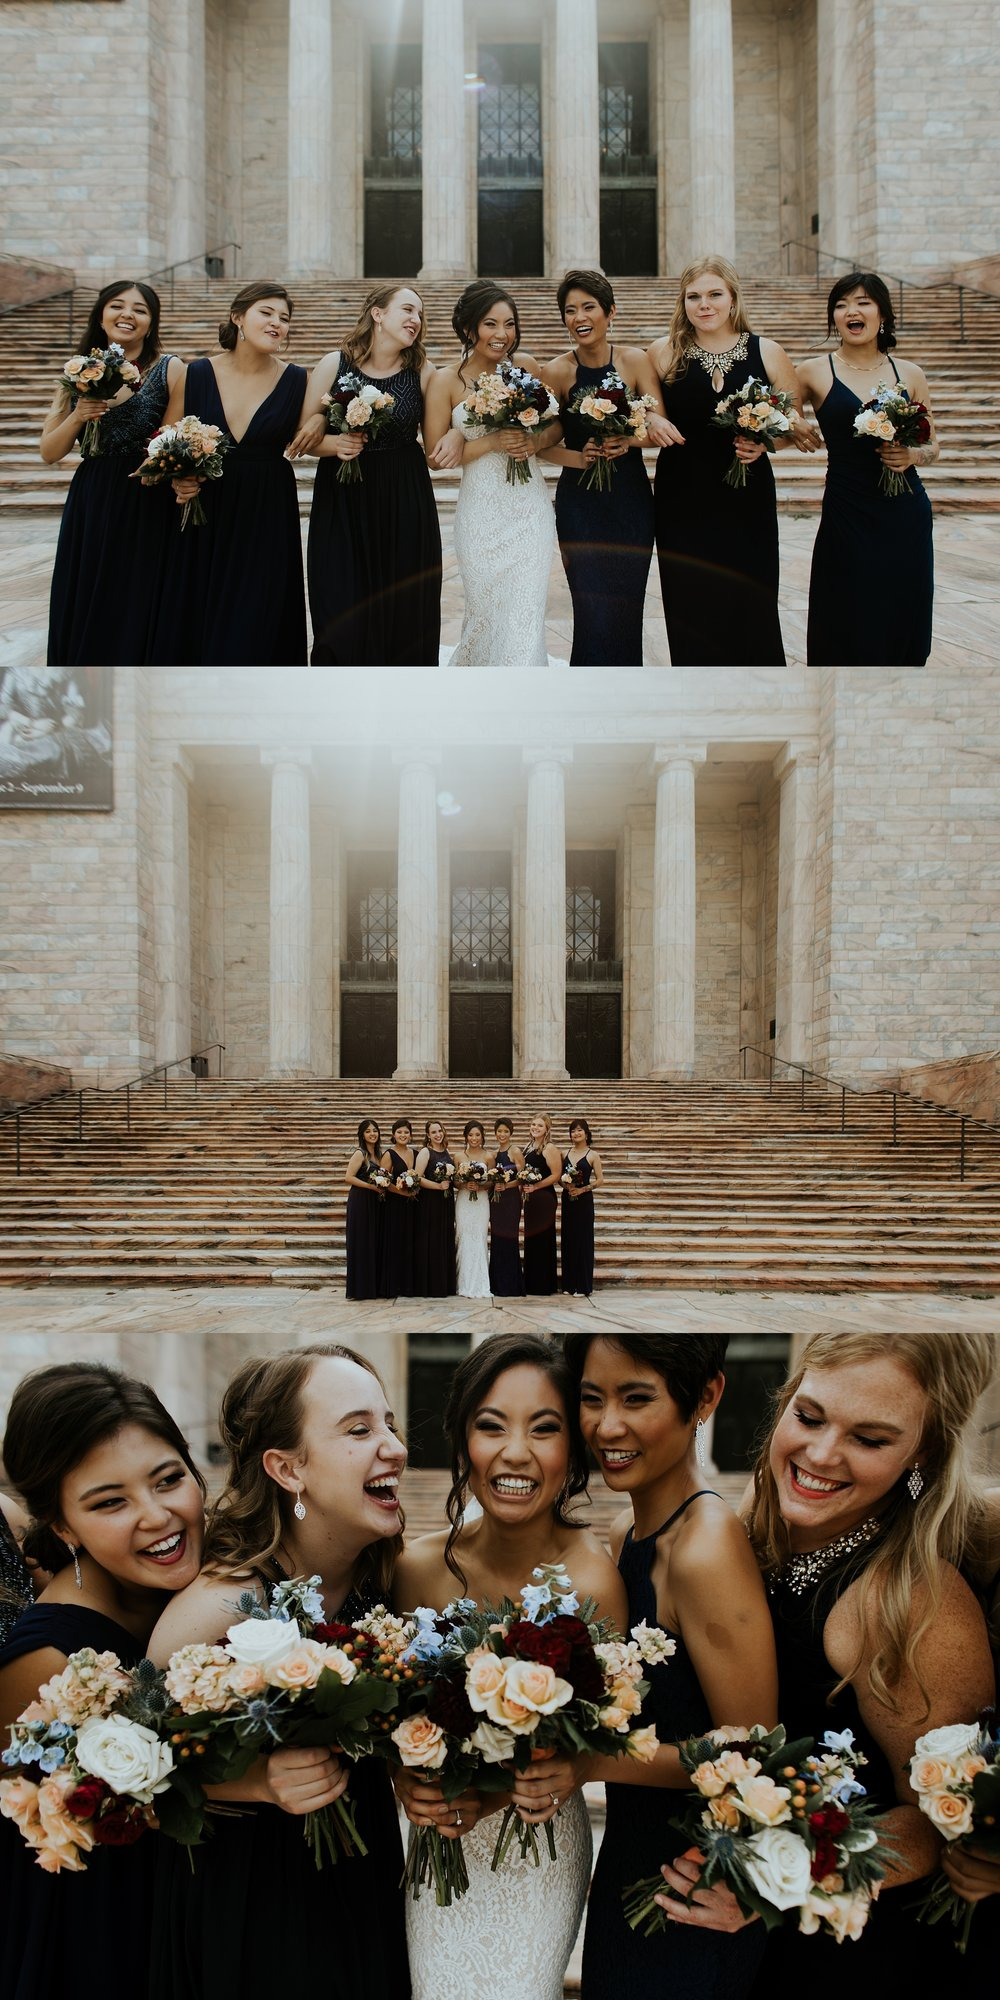 Whimsical Joslyn Art Museum Wedding by Trin Jensen - Omaha Nebraska Wedding Photographer_0010.jpg